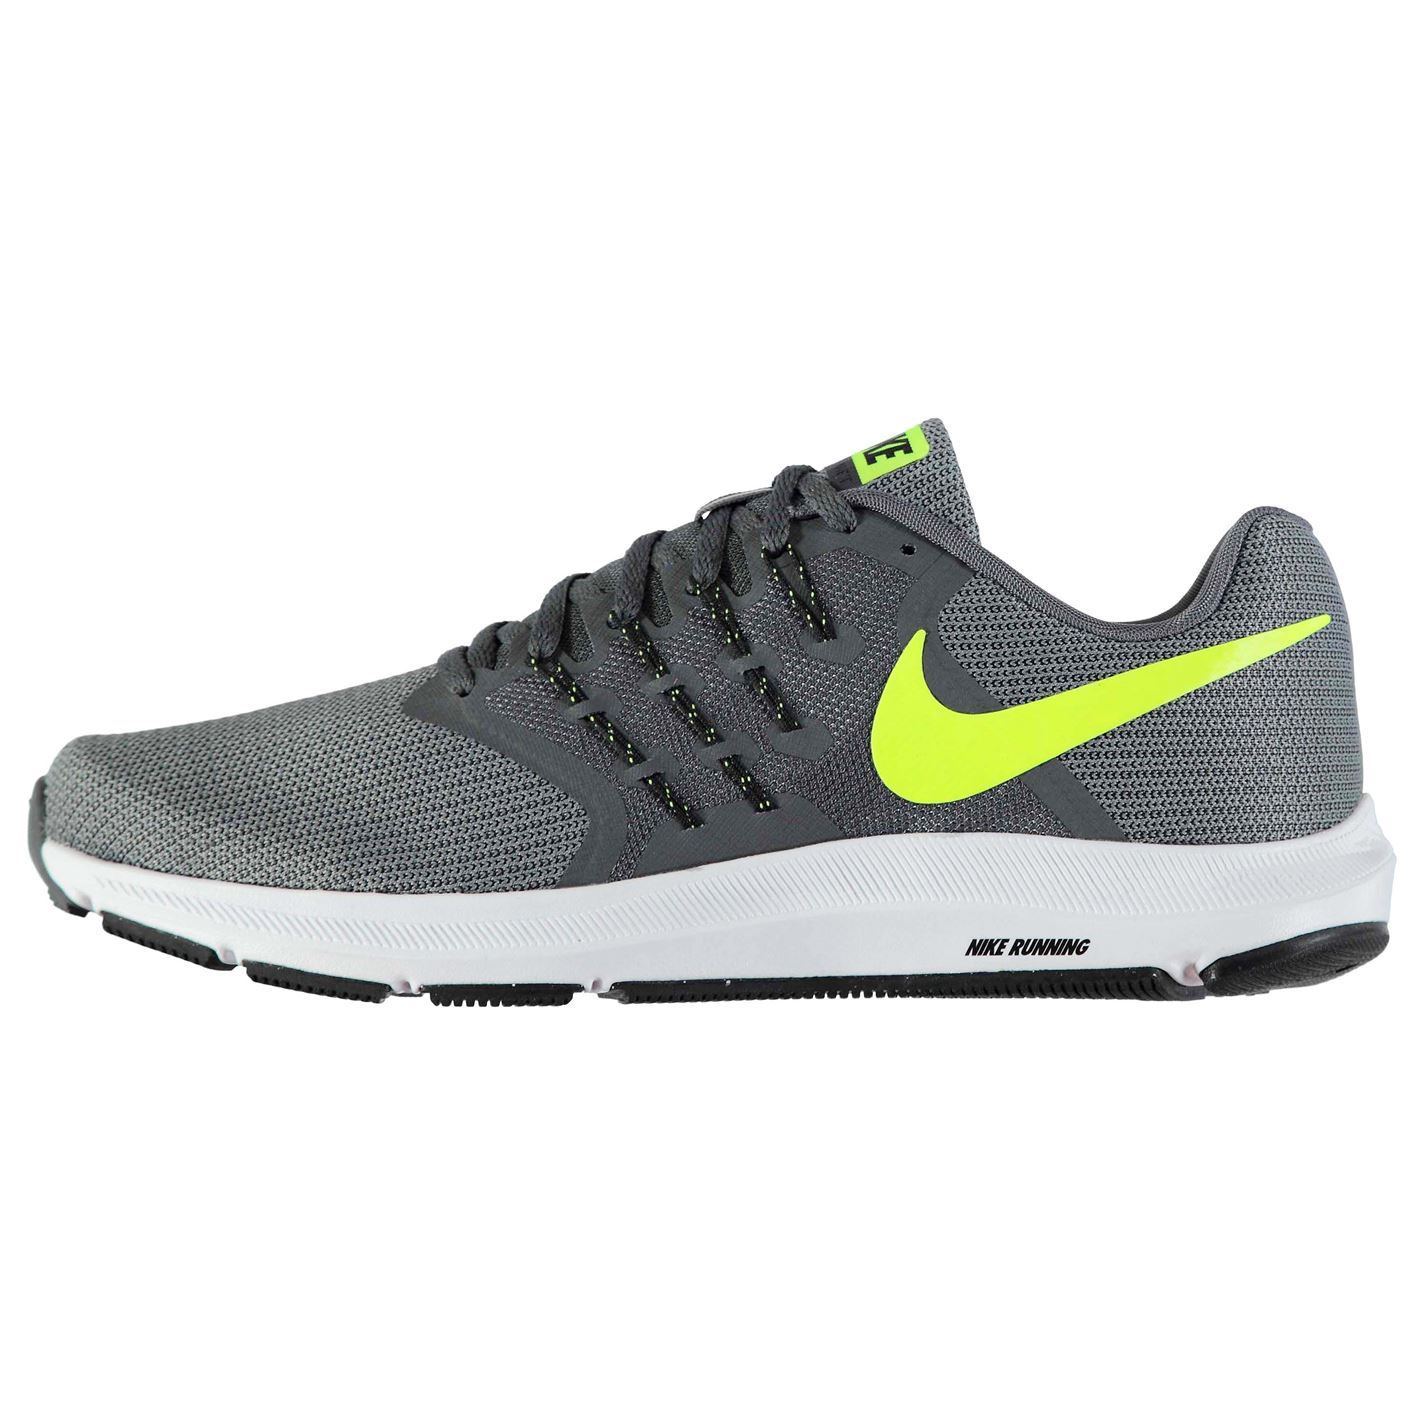 72b0abf4c8c11 ... Nike Run Swift Running Shoes Mens Grey Volt Jogging Trainers Sneakers  ...